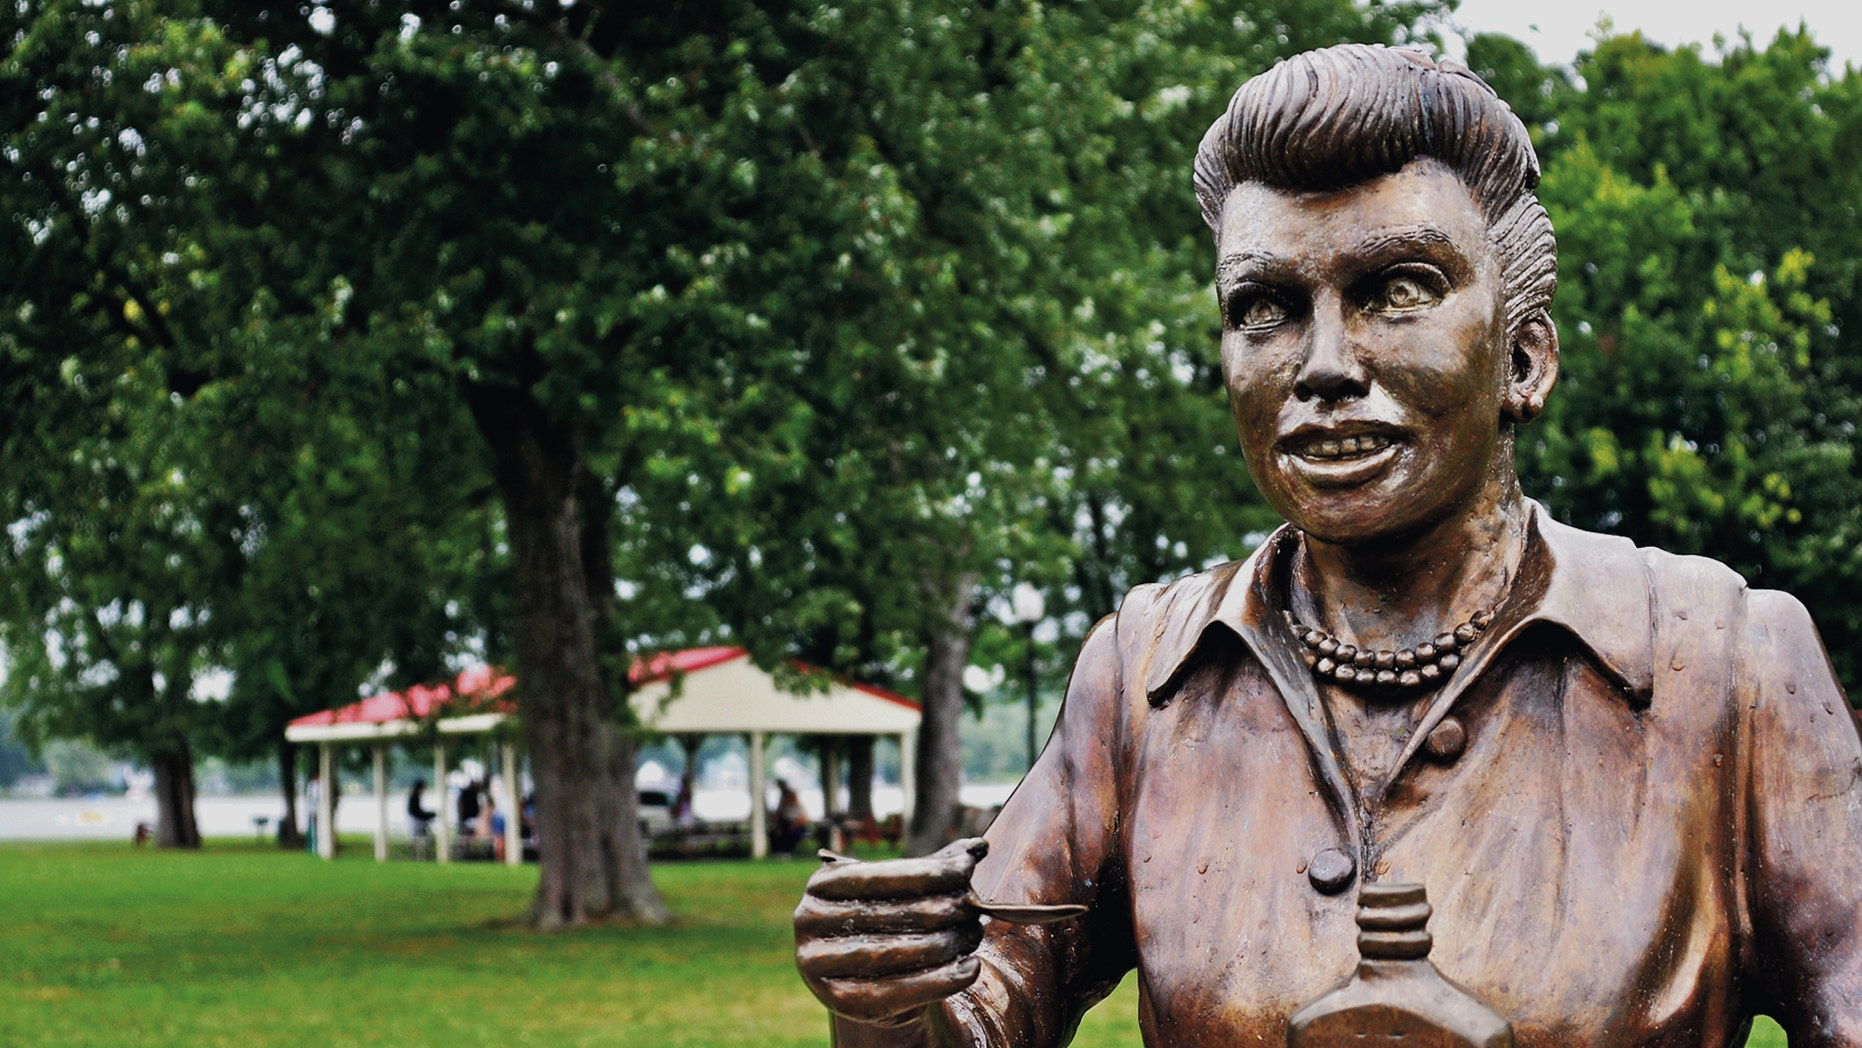 In an Aug. 2012 photo, a bronze sculpture of Lucille Ball is displayed in in Lucille Ball Memorial Park in the village of Celoron, NY., Lucy's home town.